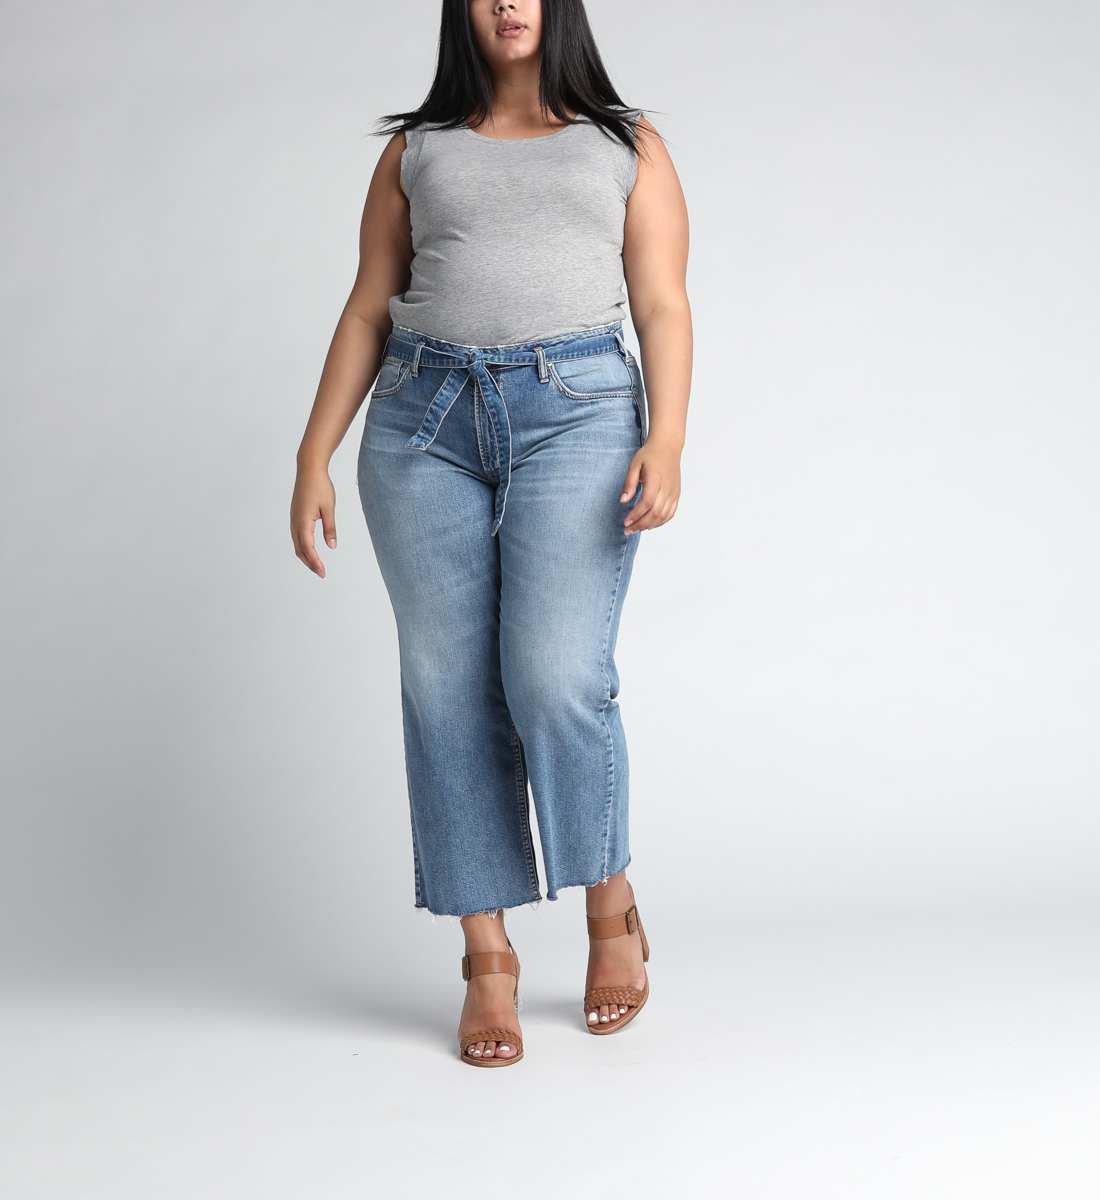 Tied and Wide High Rise Wide Leg Jeans Plus Size Alt Image 1